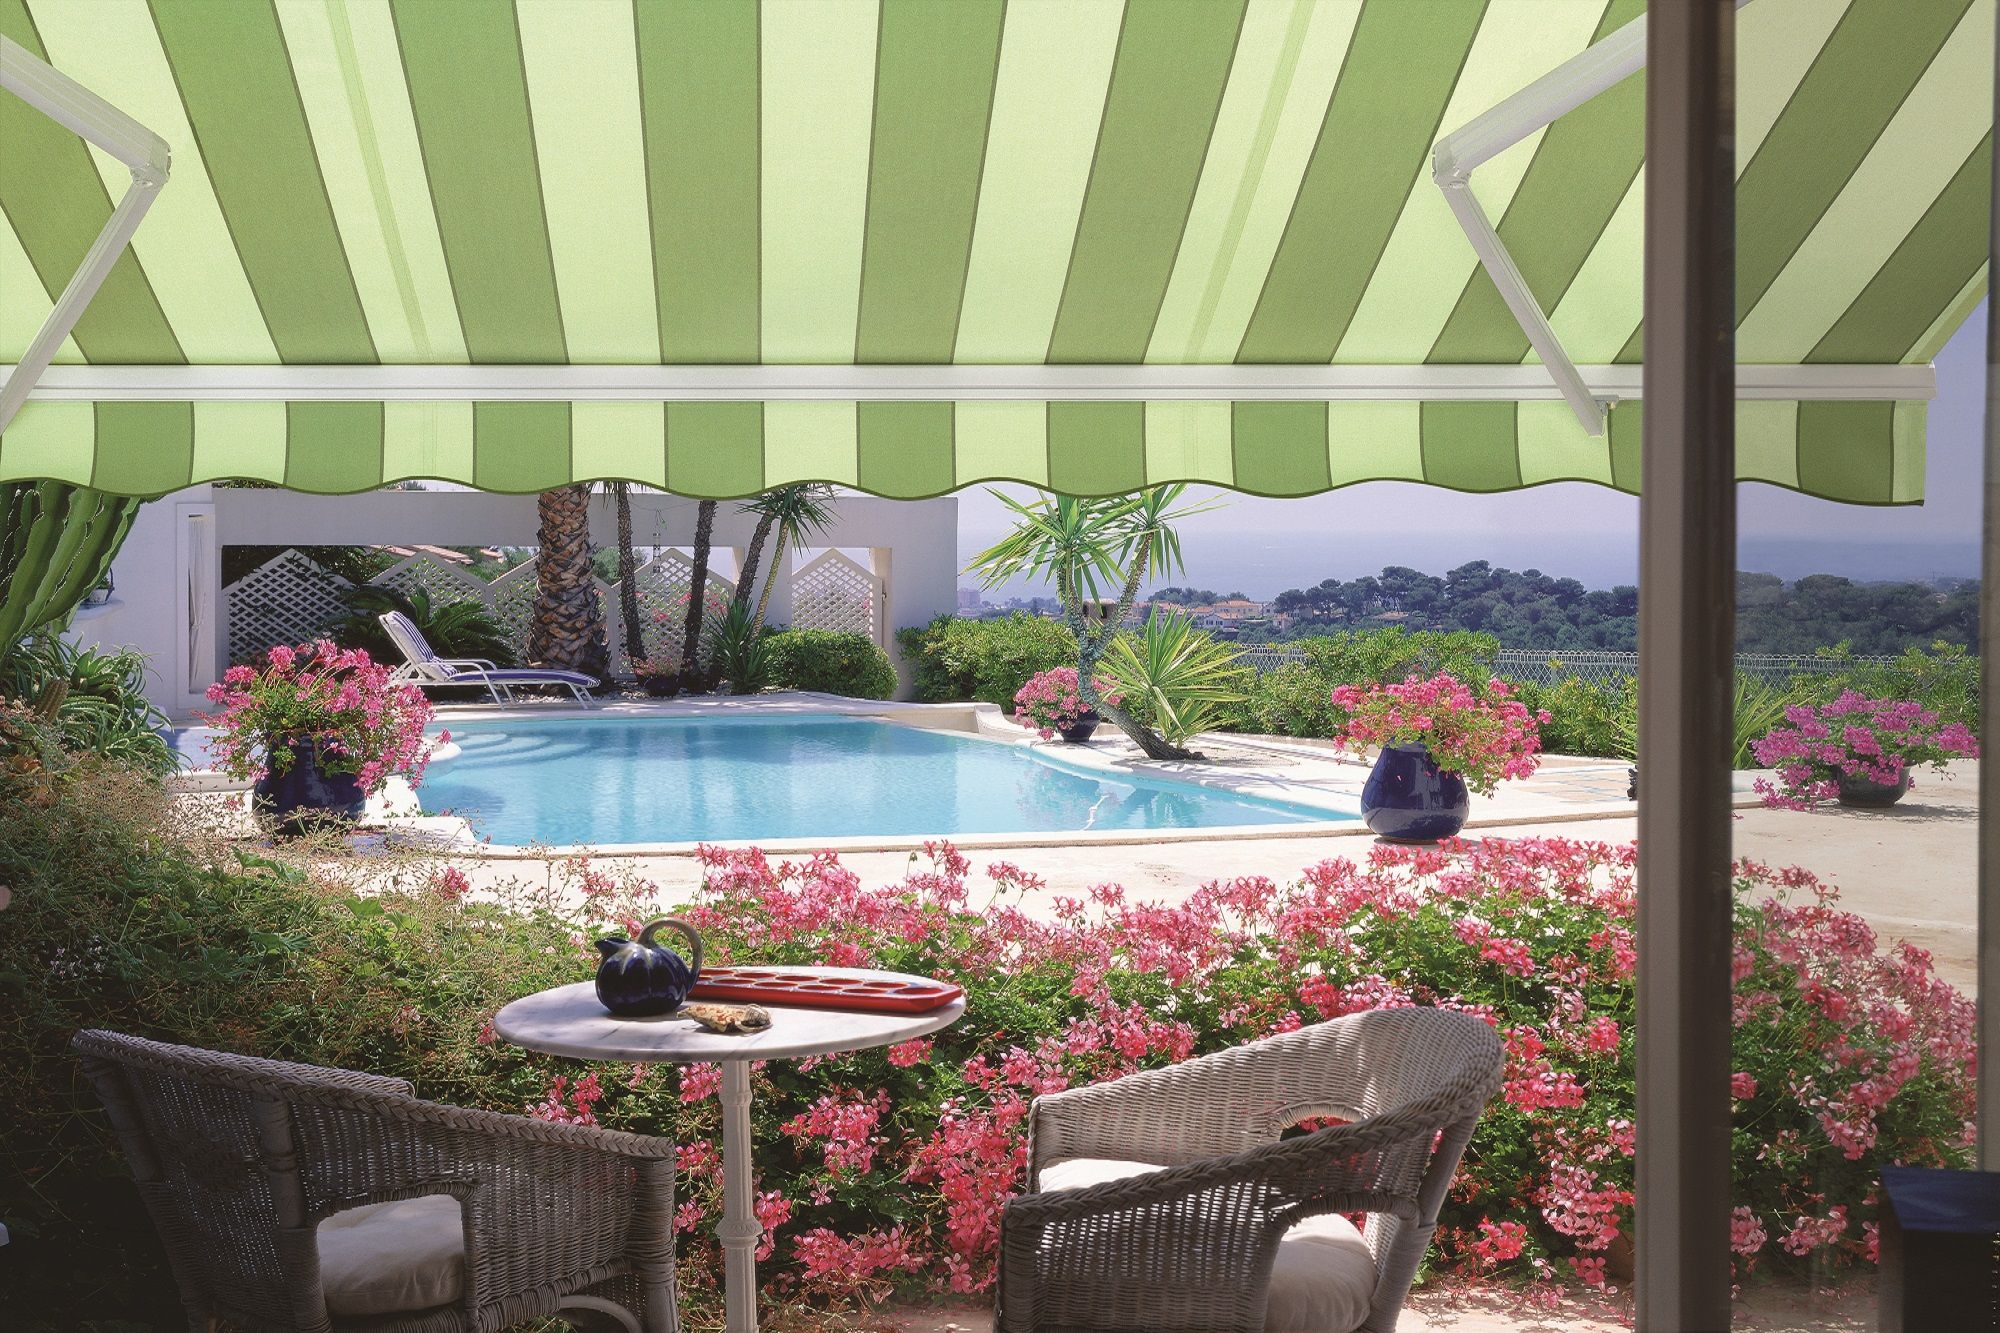 innovative durasol regal page openings awnings arm patio shades awning lateral retractable